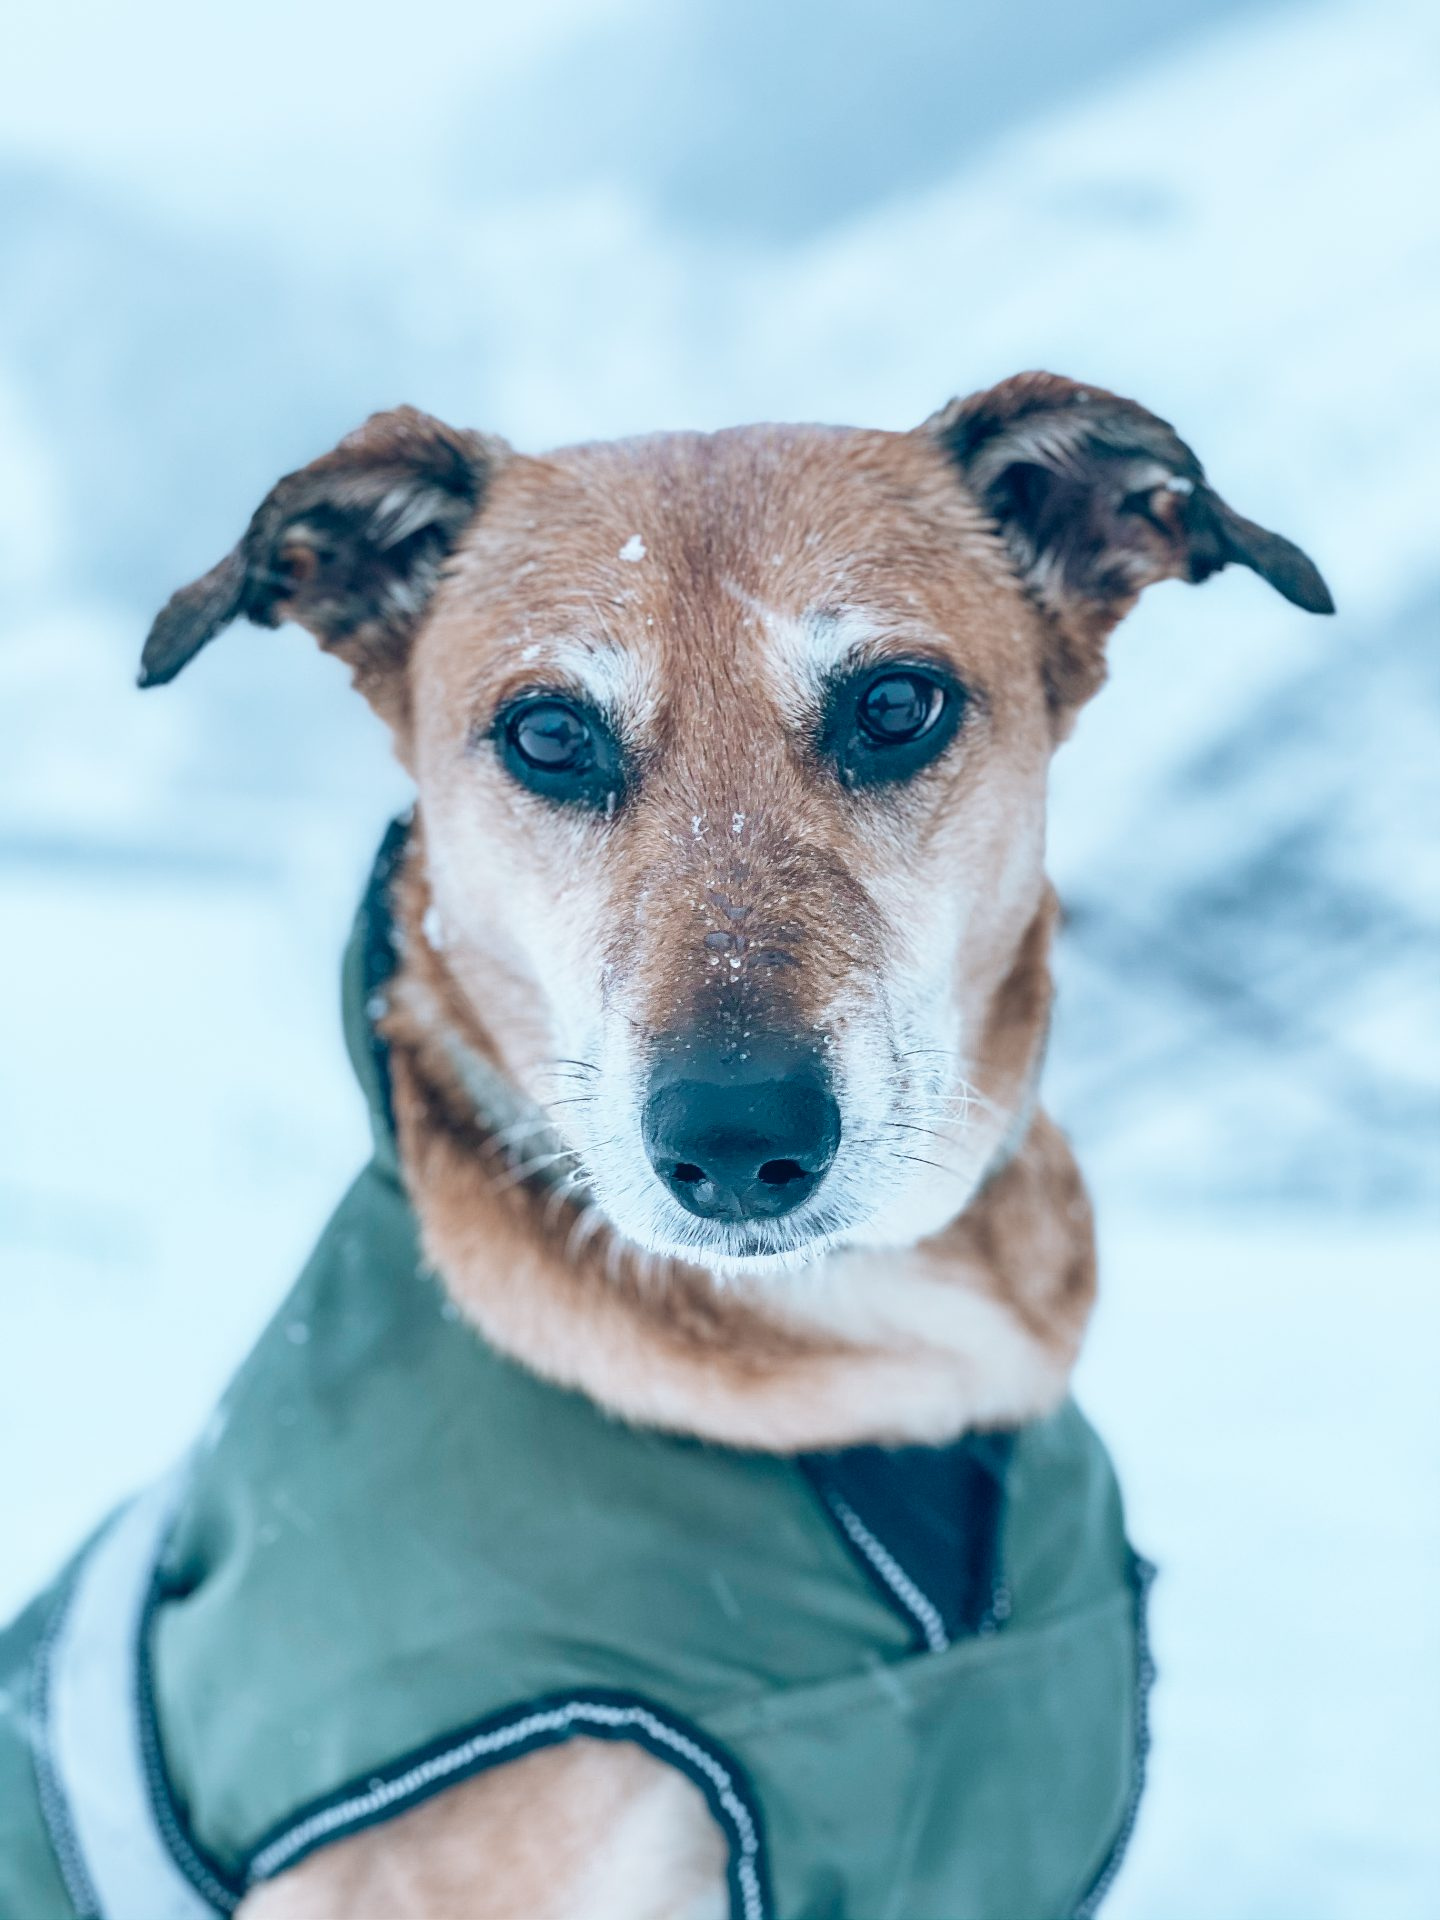 rescue dog in snow